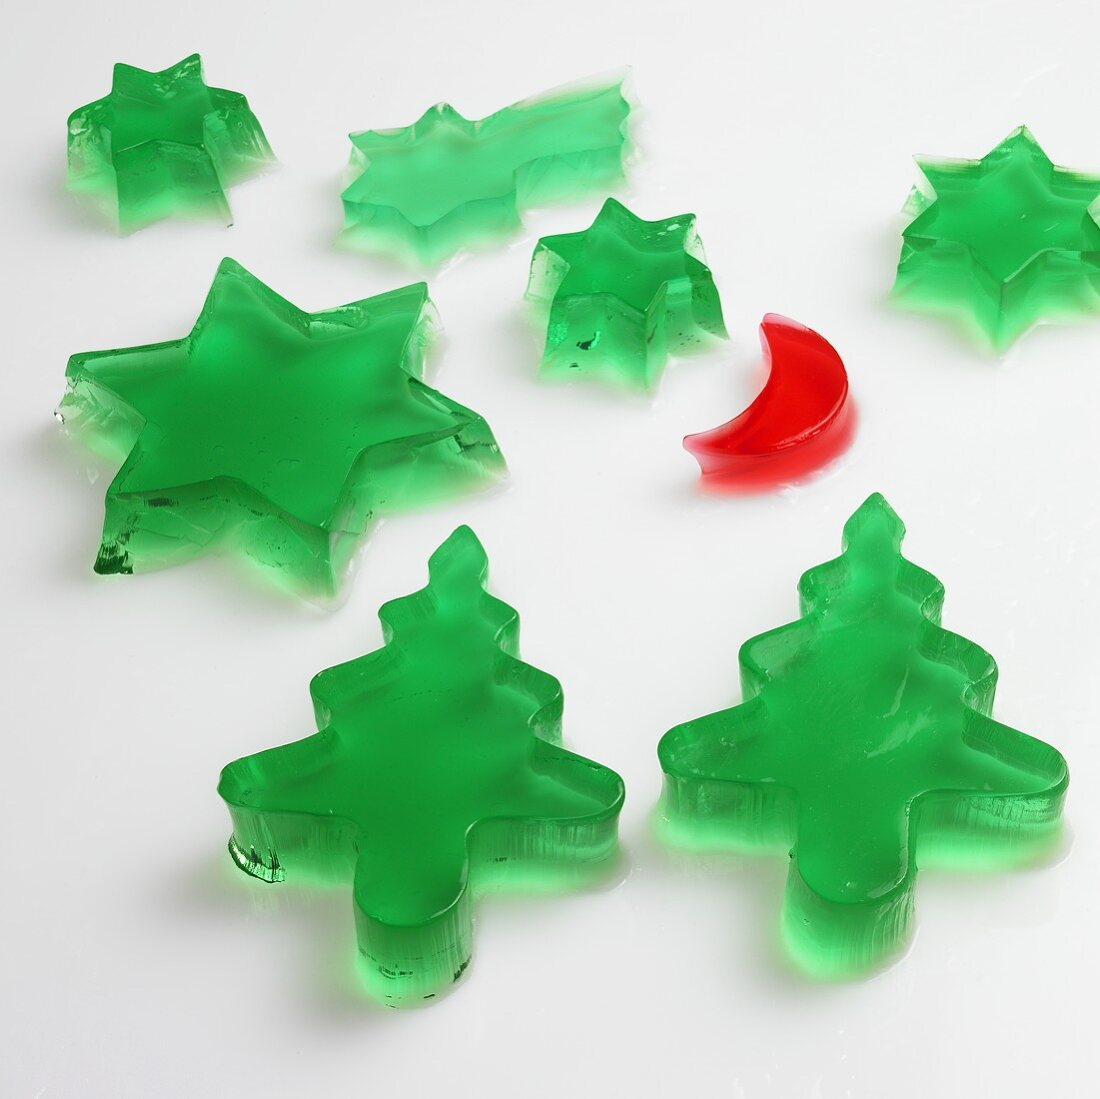 Jelly stars, moon and trees (woodruff and raspberry jelly)